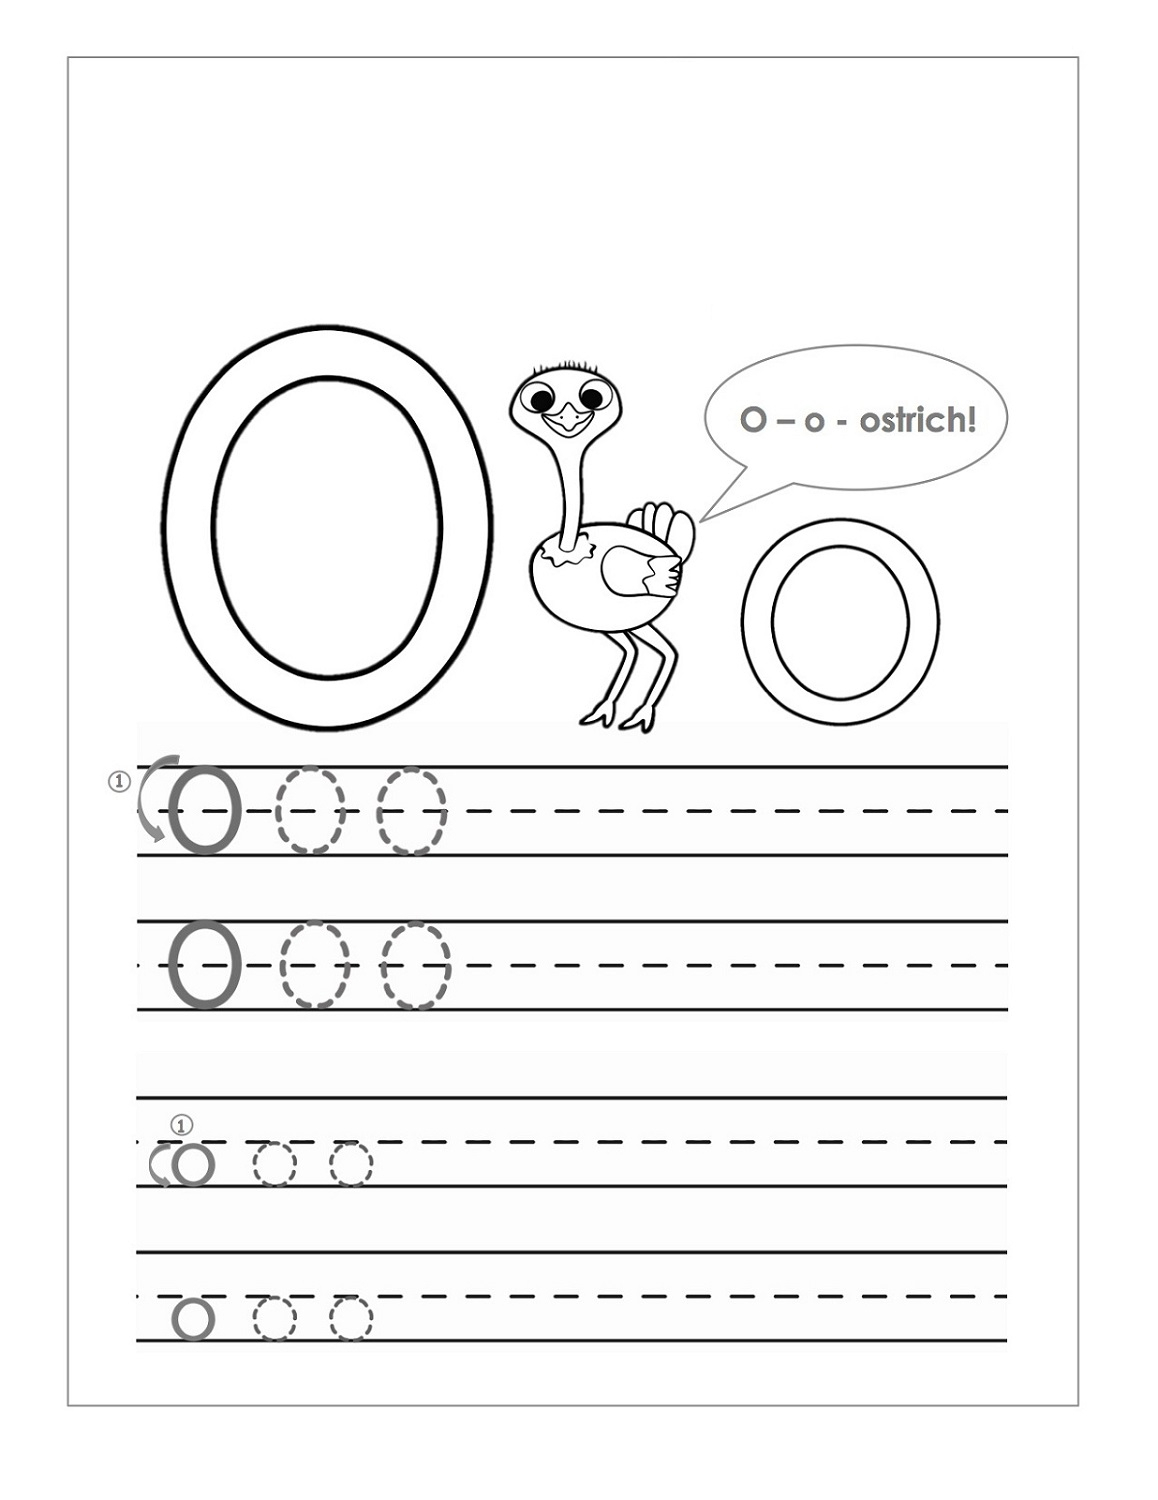 Letter O Worksheets For Preschool – Kids Learning Activity with regard to Trace Letter O Worksheets Preschool